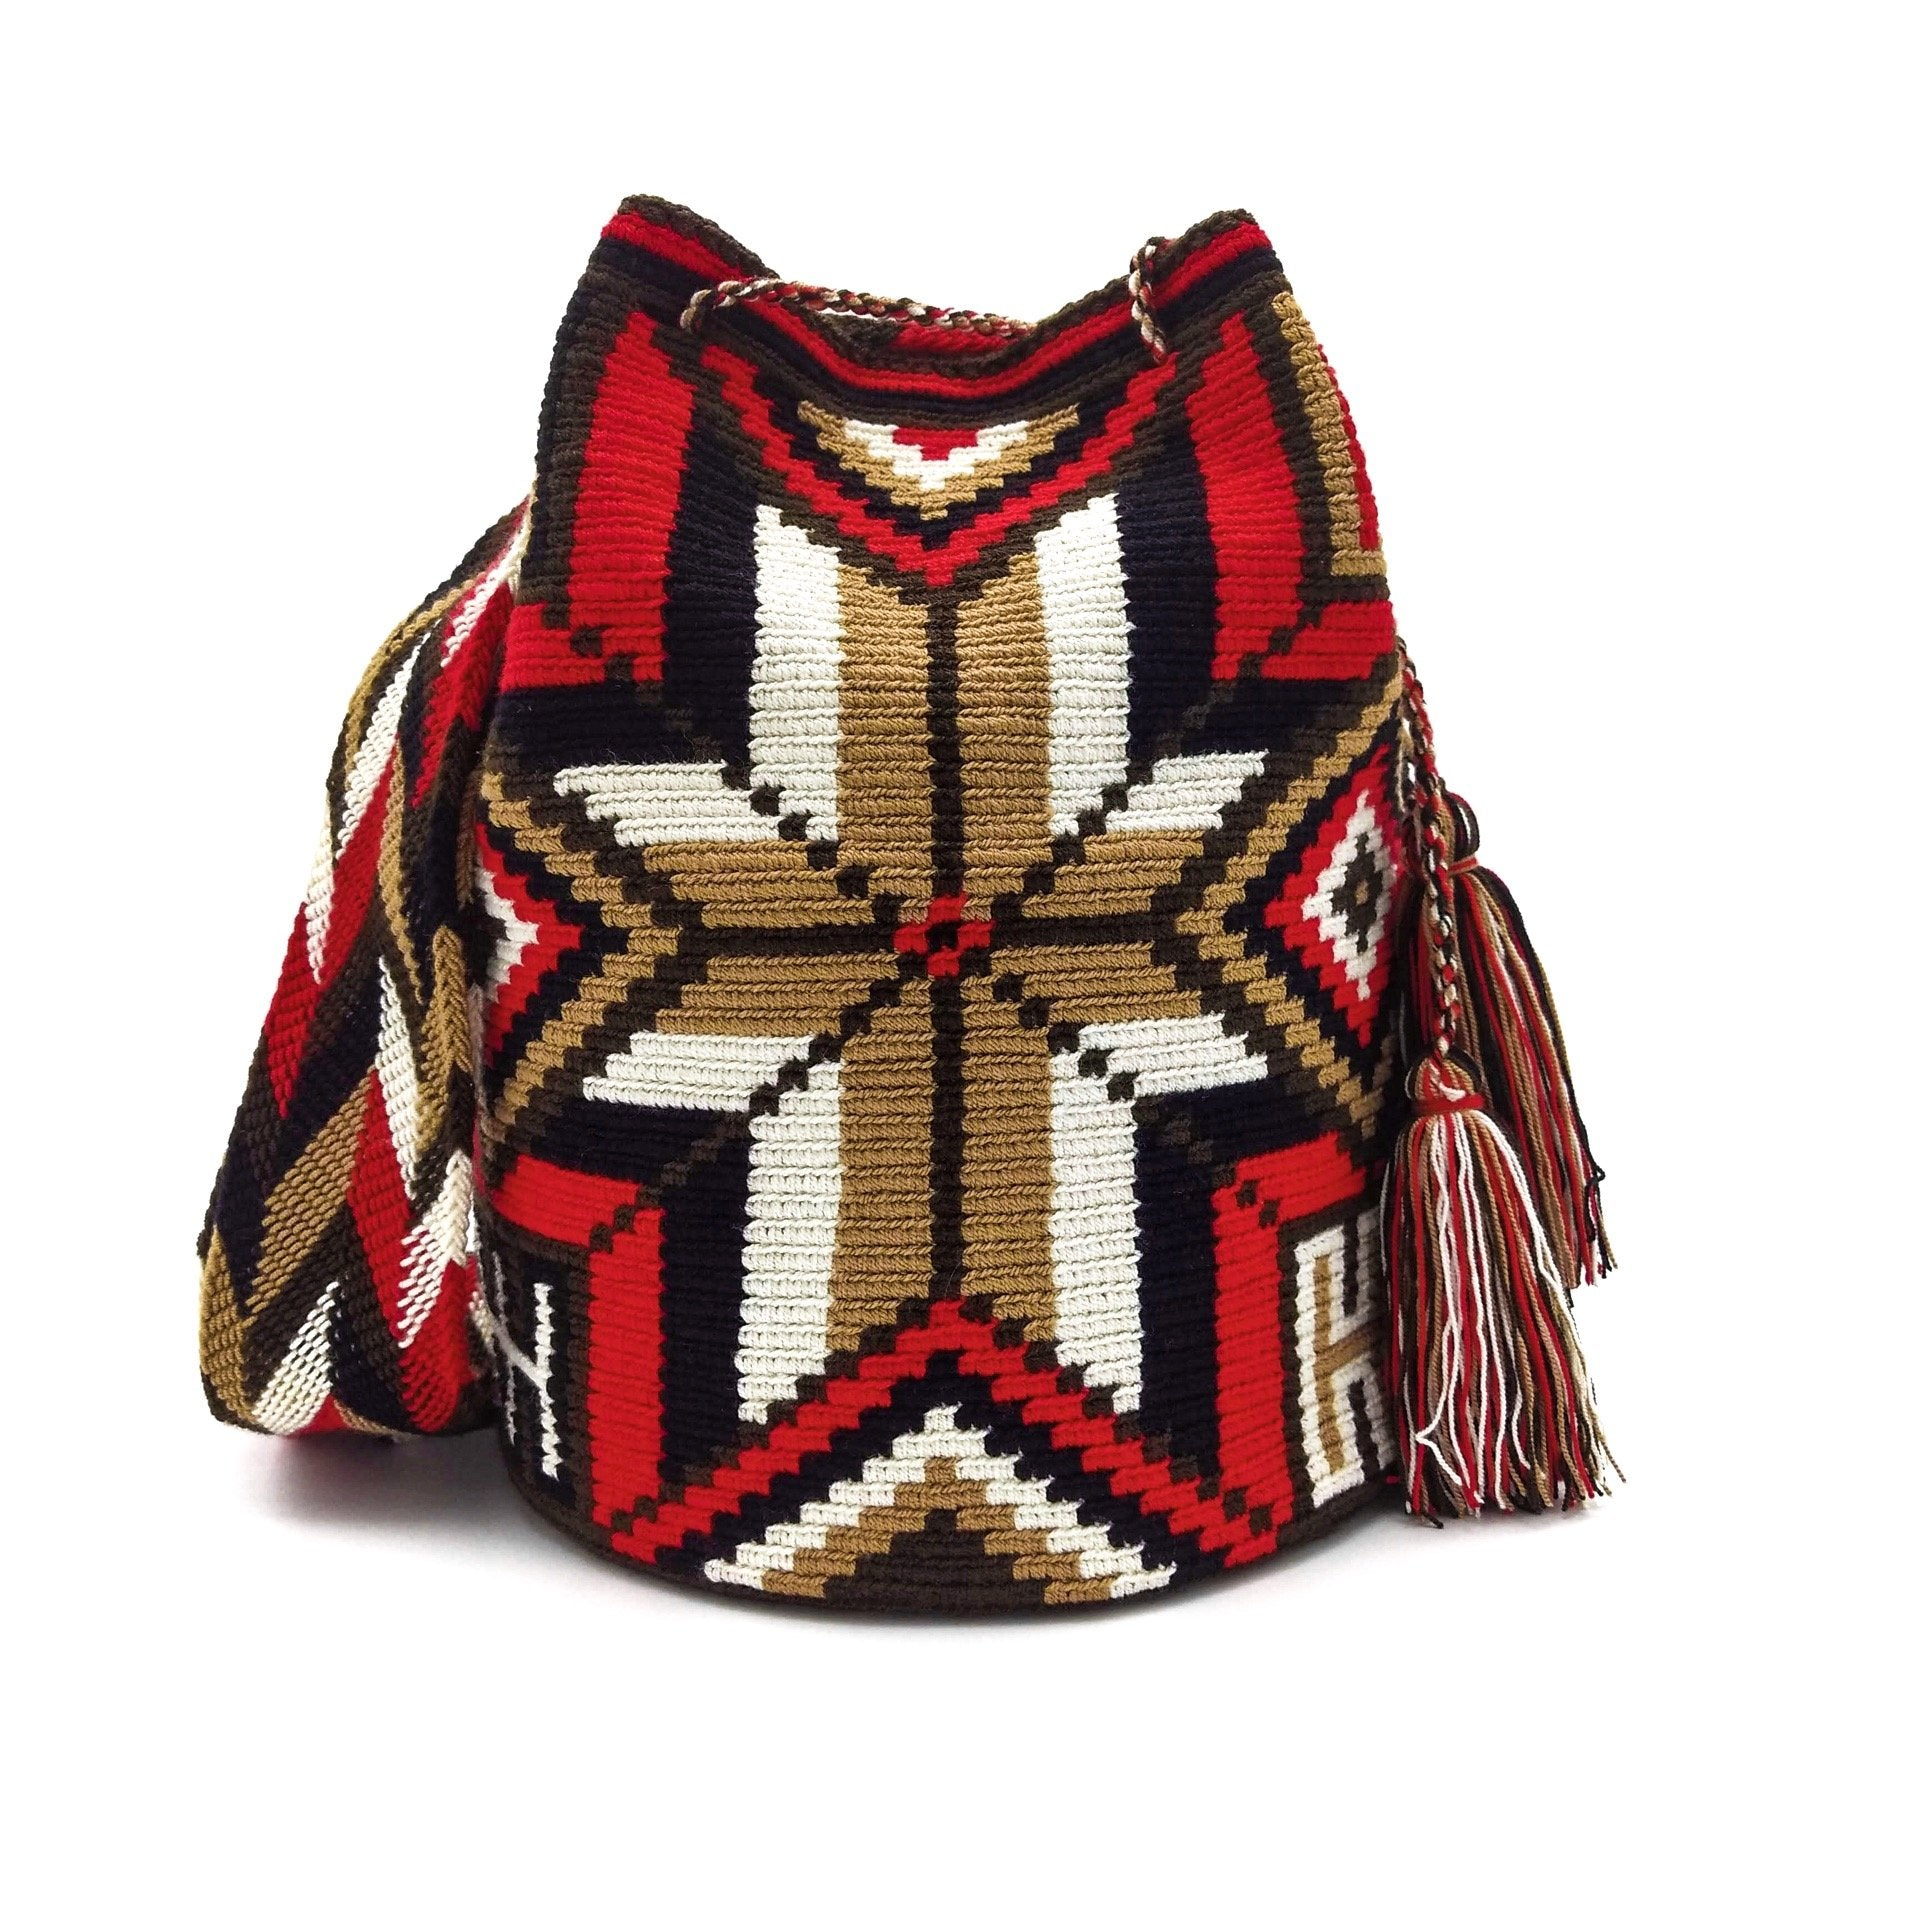 Front view of a beautiful Wayuu Mochila Bag with a vibrant pattern in colors Ivory, Bright-Red, Light-Brown, Dark-Brown, and Black.